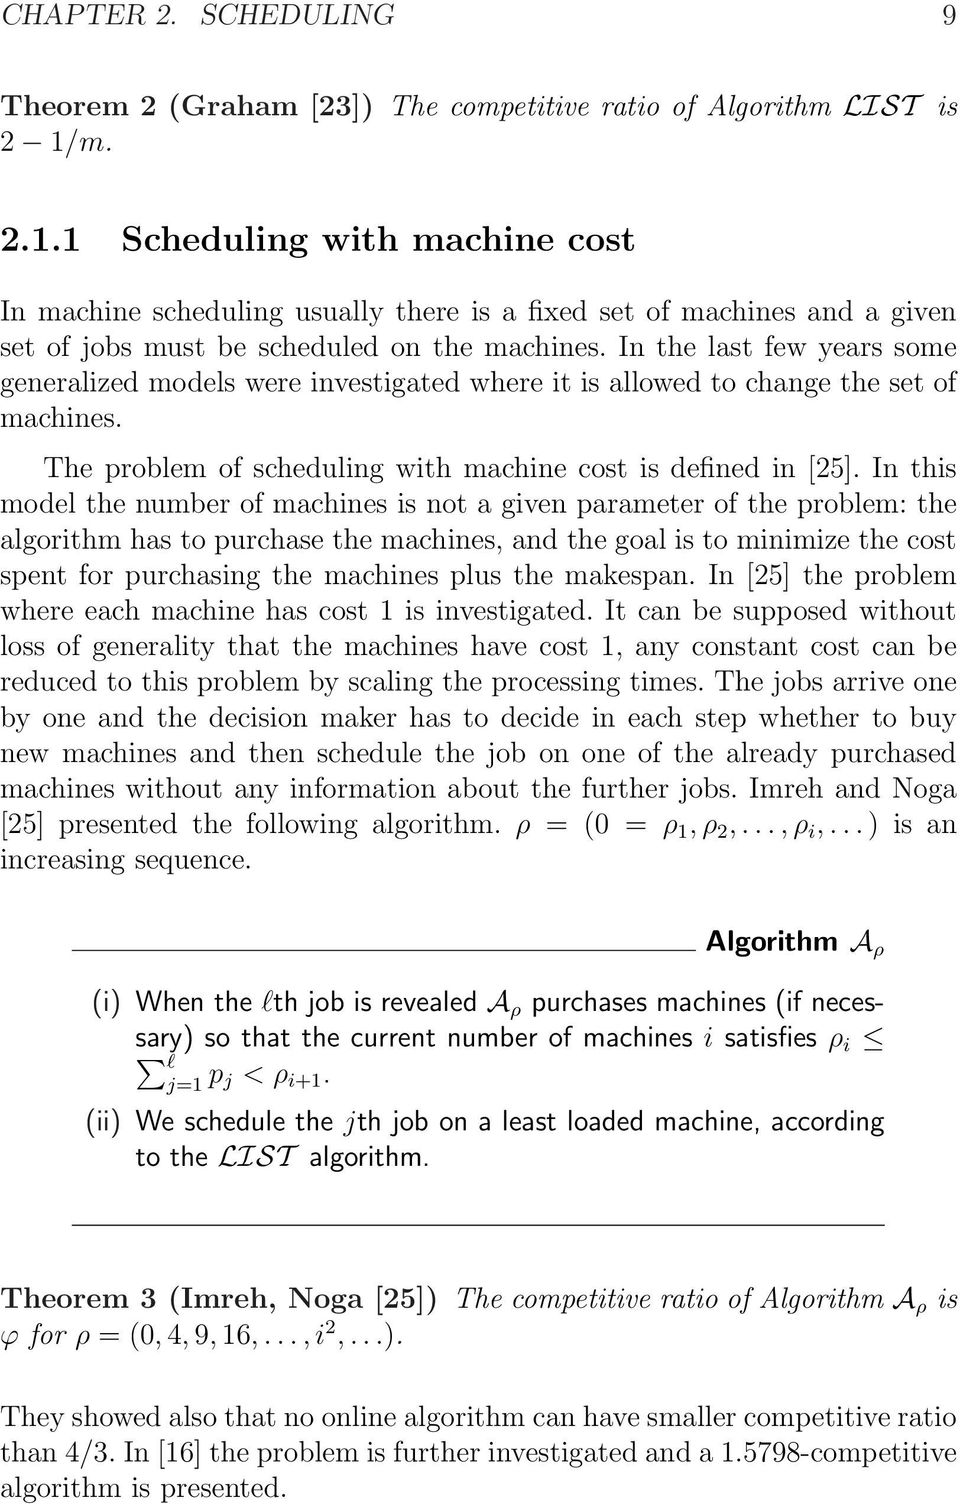 In the last few years some generalized models were investigated where it is allowed to change the set of machines. The problem of scheduling with machine cost is defined in [25].